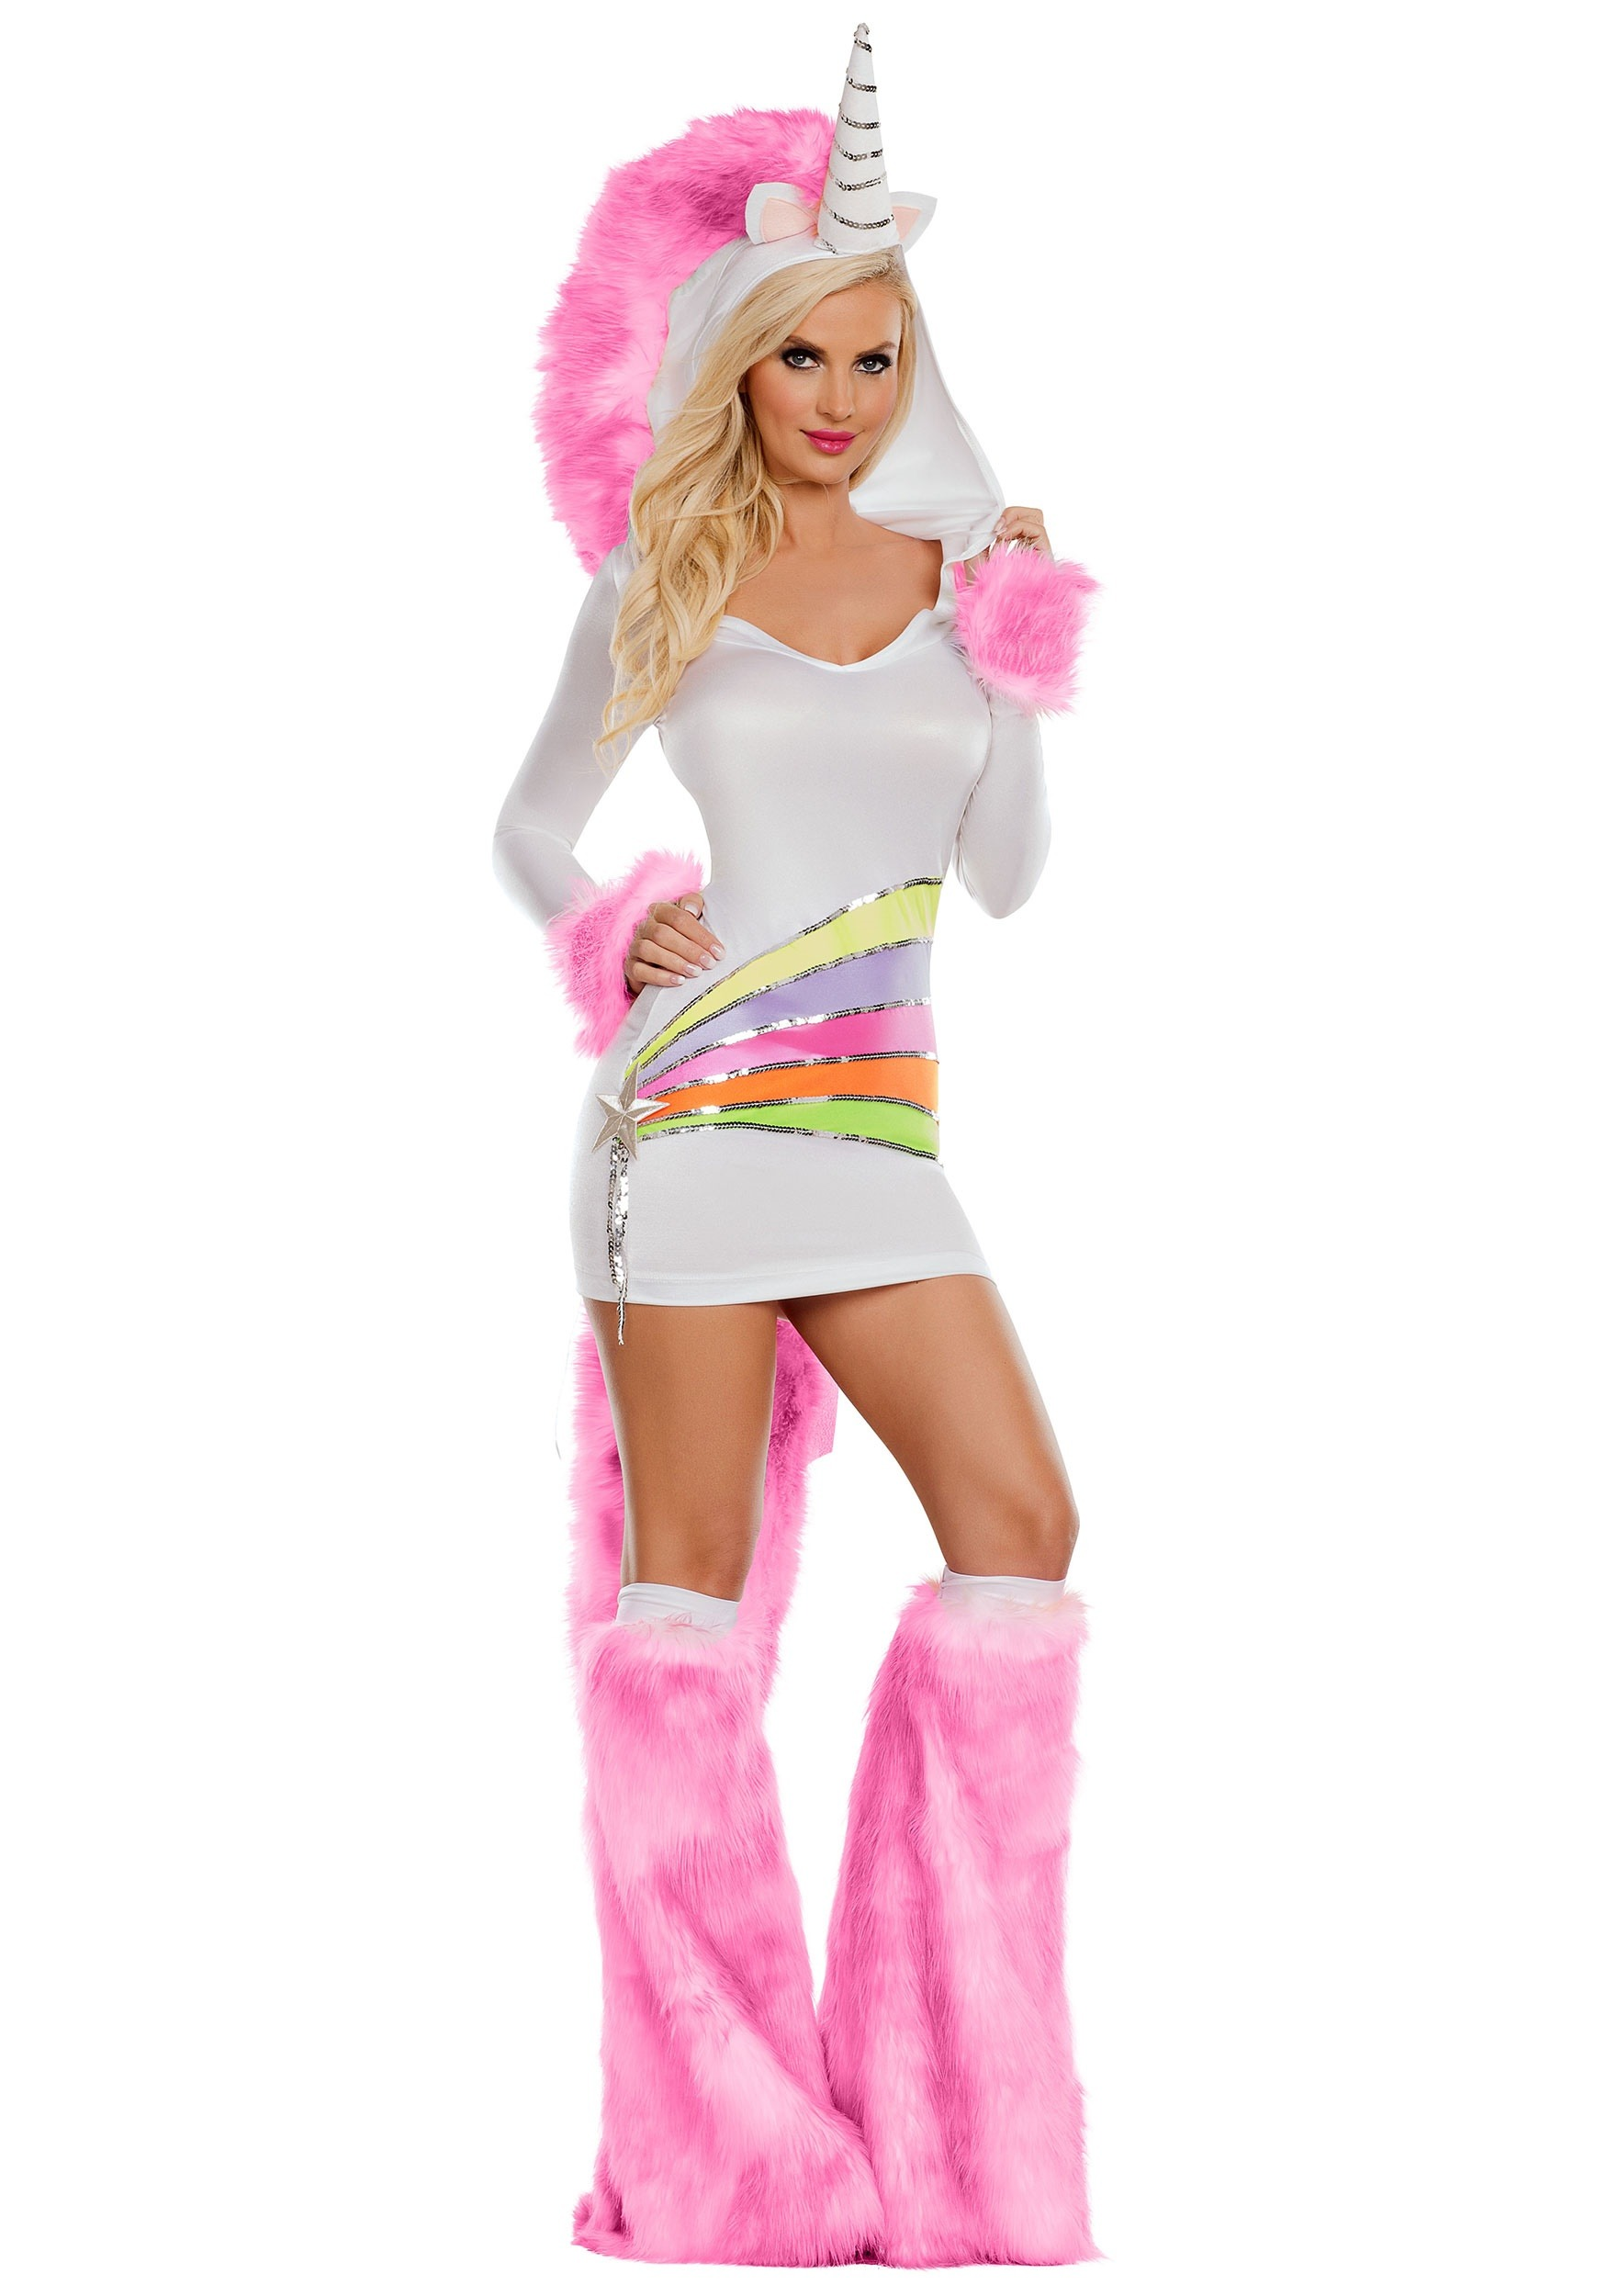 INOpets.com Anything for Pets Parents & Their Pets Rainbow Unicorn Women's Costume